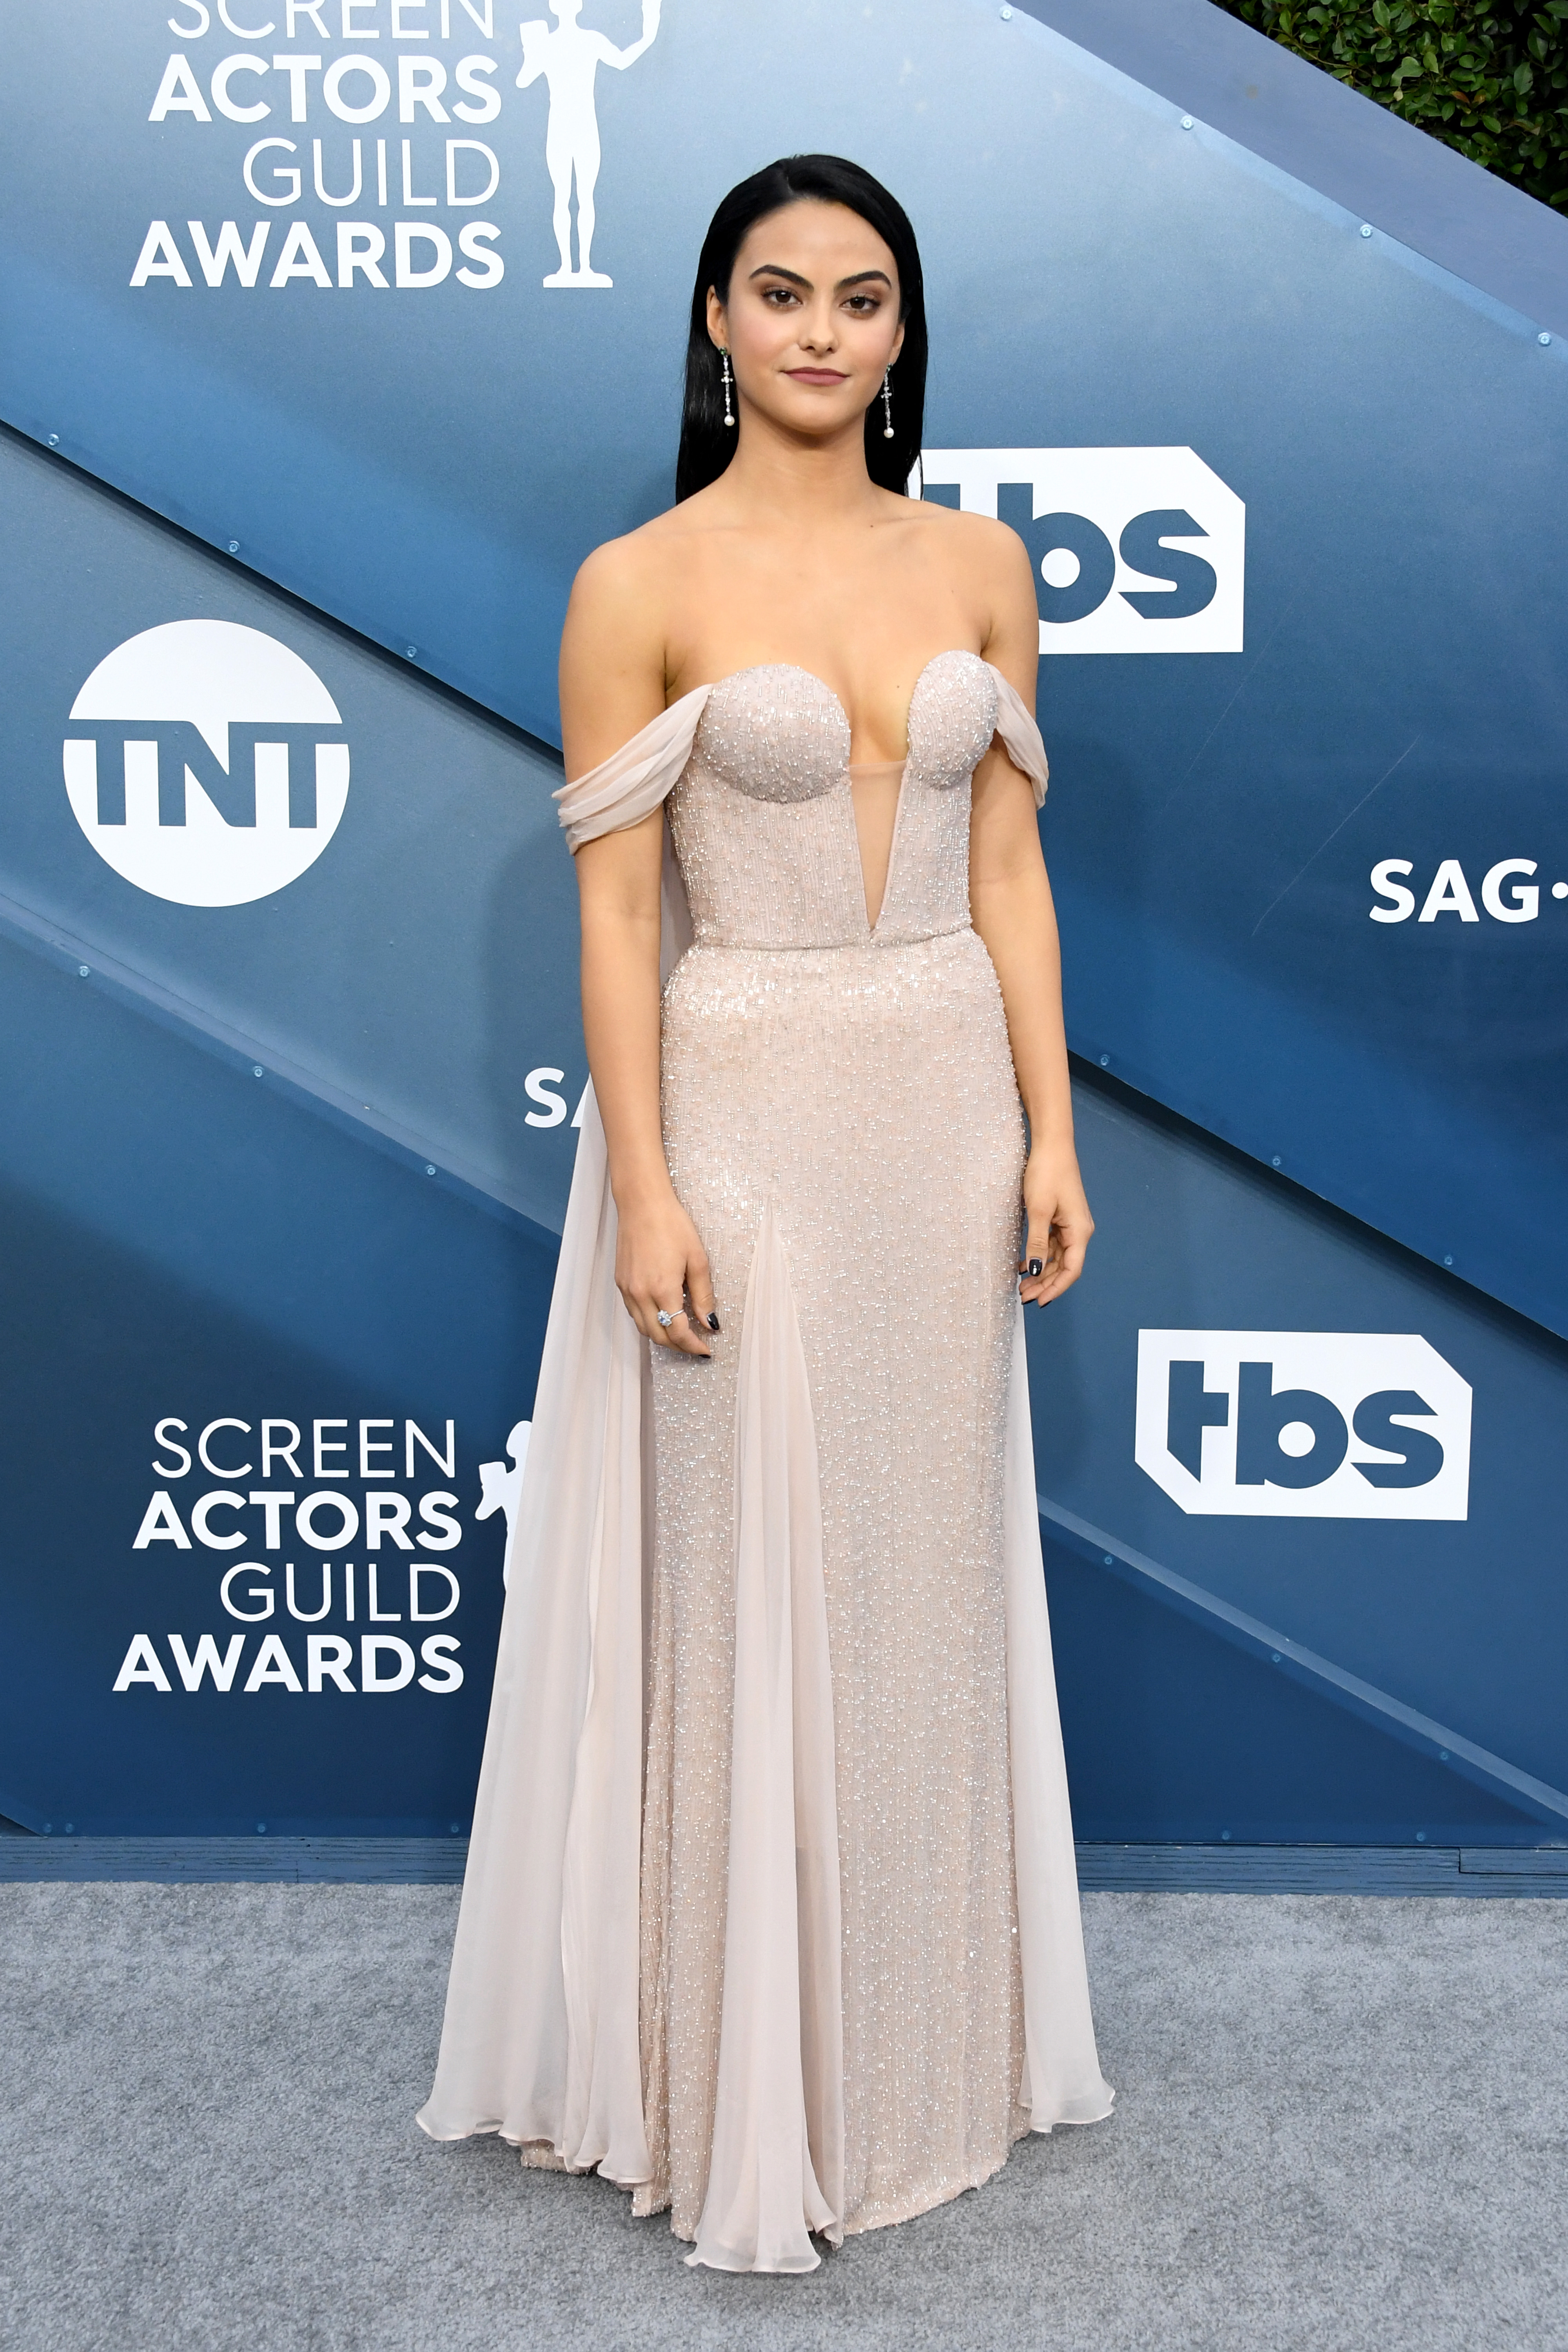 LOS ANGELES, CALIFORNIA - JANUARY 19: Camila Mendes attends the 26th Annual Screen ActorsGuild Awards at The Shrine Auditorium on January 19, 2020 in Los Angeles, California. (Photo by Jon Kopaloff/Getty Images)